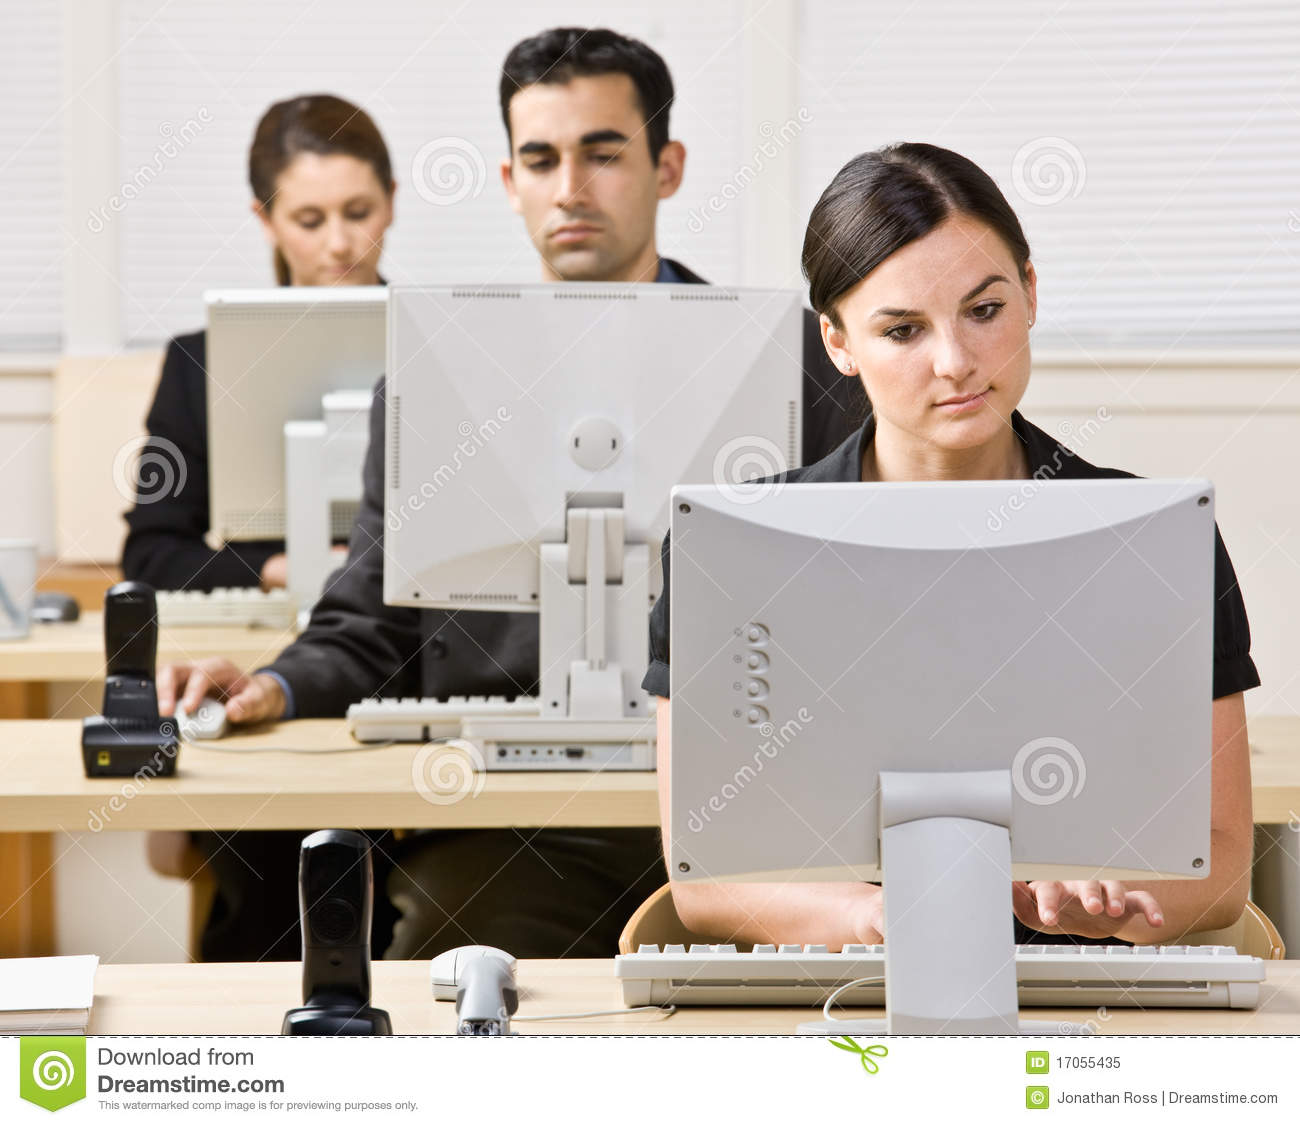 Business People Working On Computers Royalty Free Stock Photo - Image